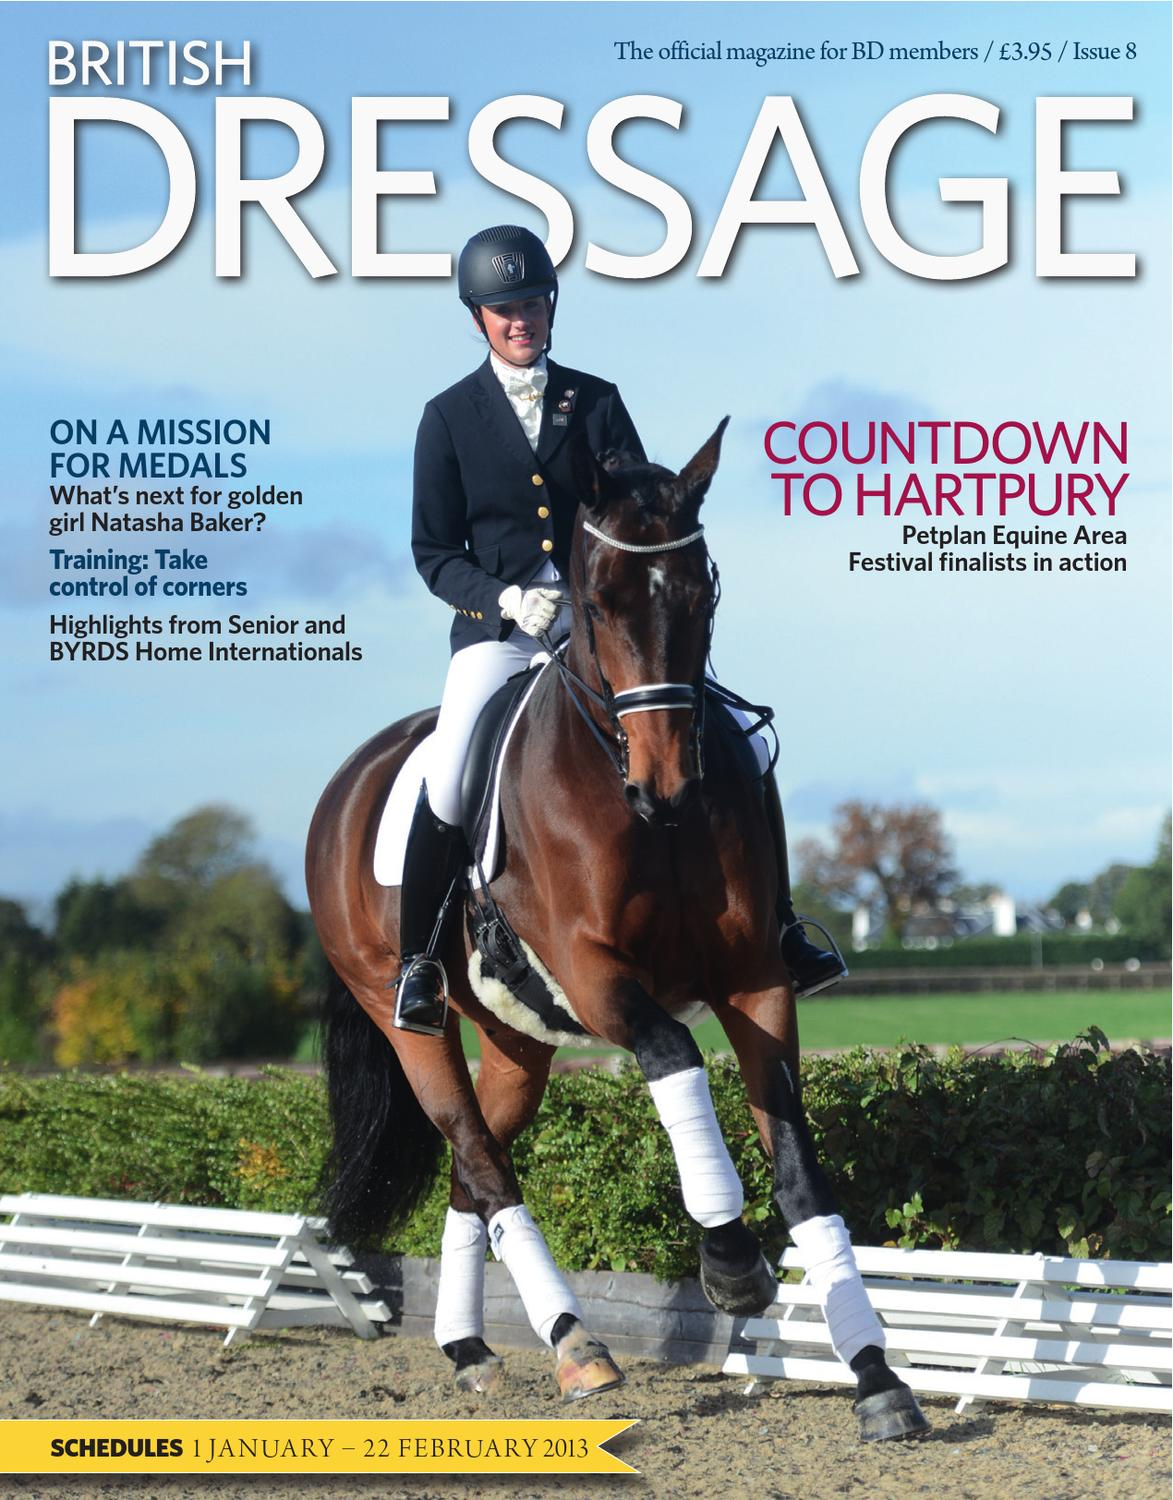 Dressage british rules what to wear